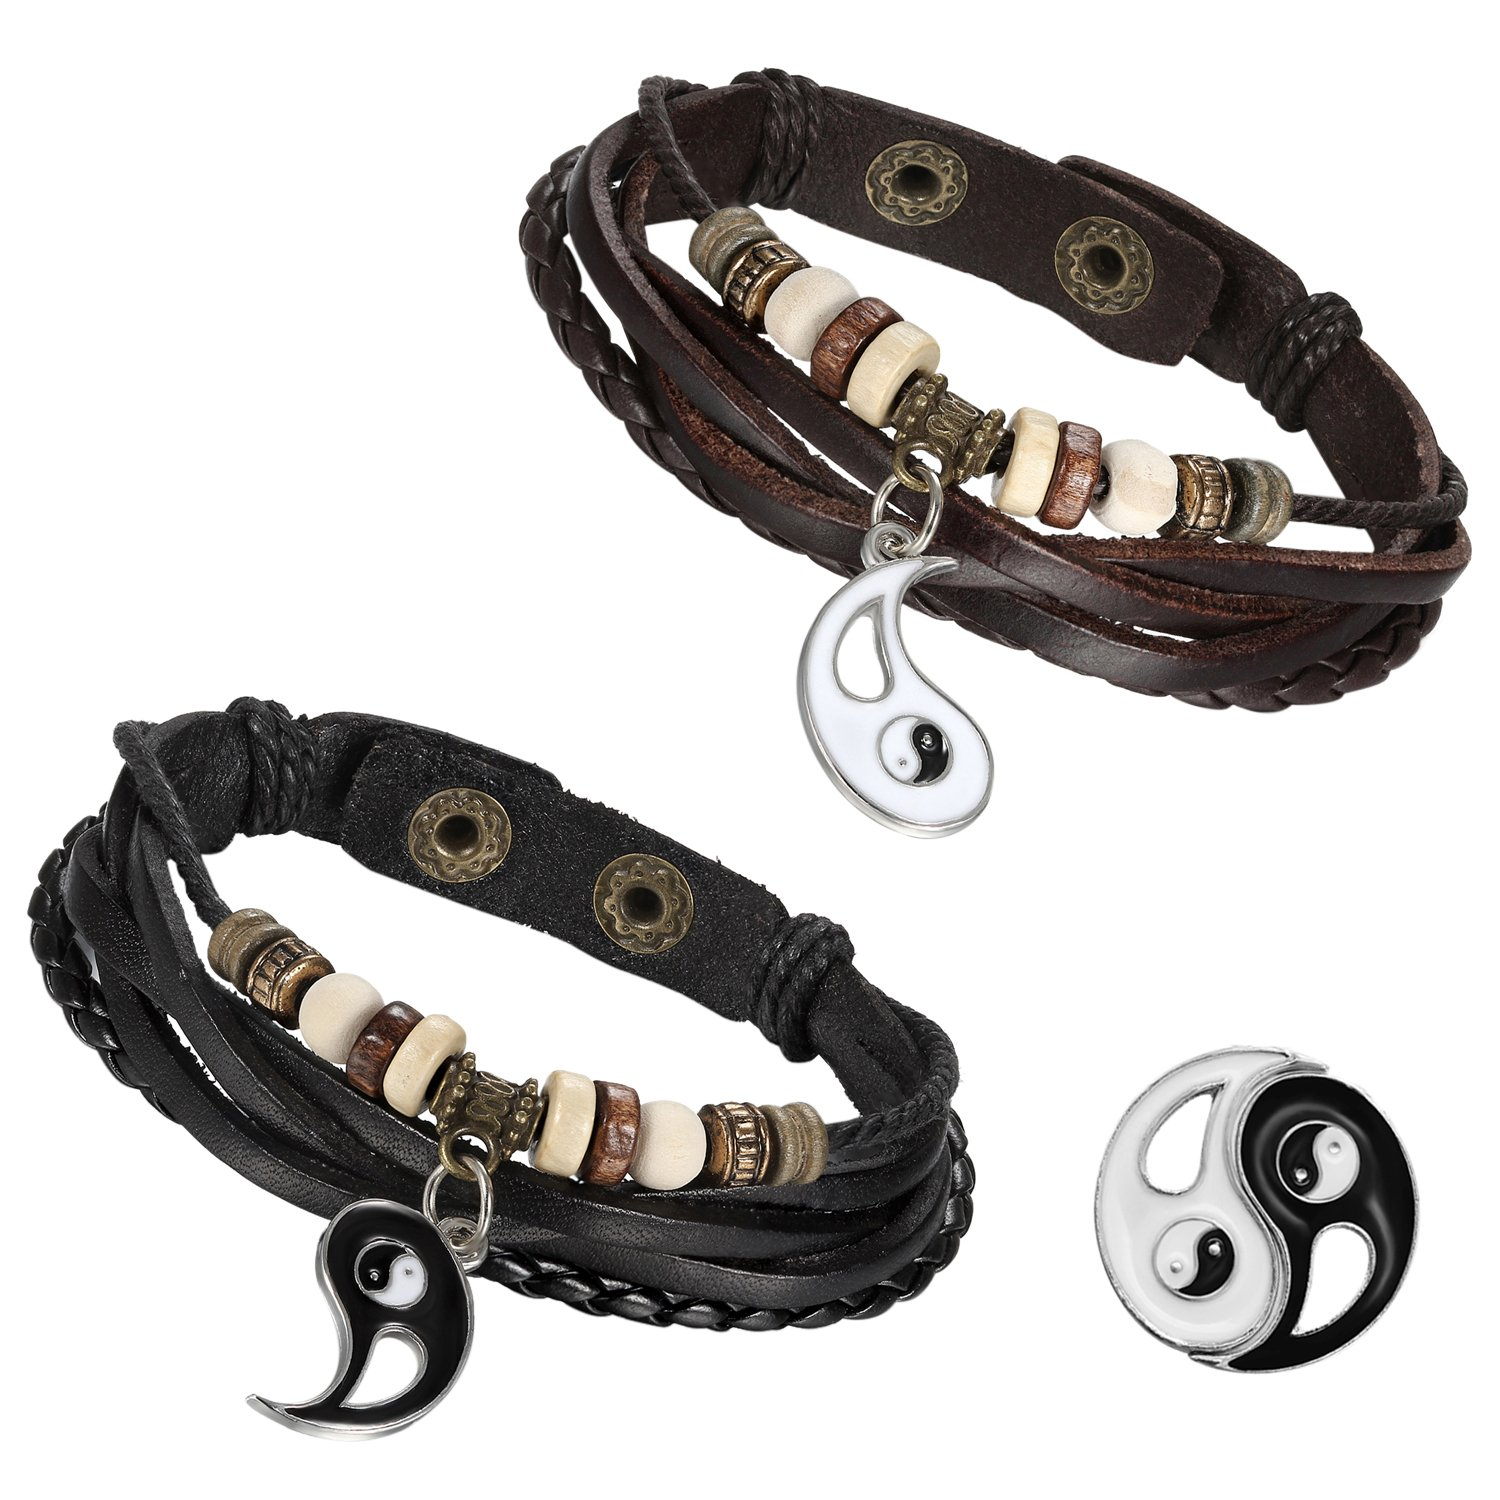 Flongo Men's Womens 2PCS Vintage Taichi Yin Yang Matching Beads Leather Strap Cuff Bracelet, 8.7 inch F047007